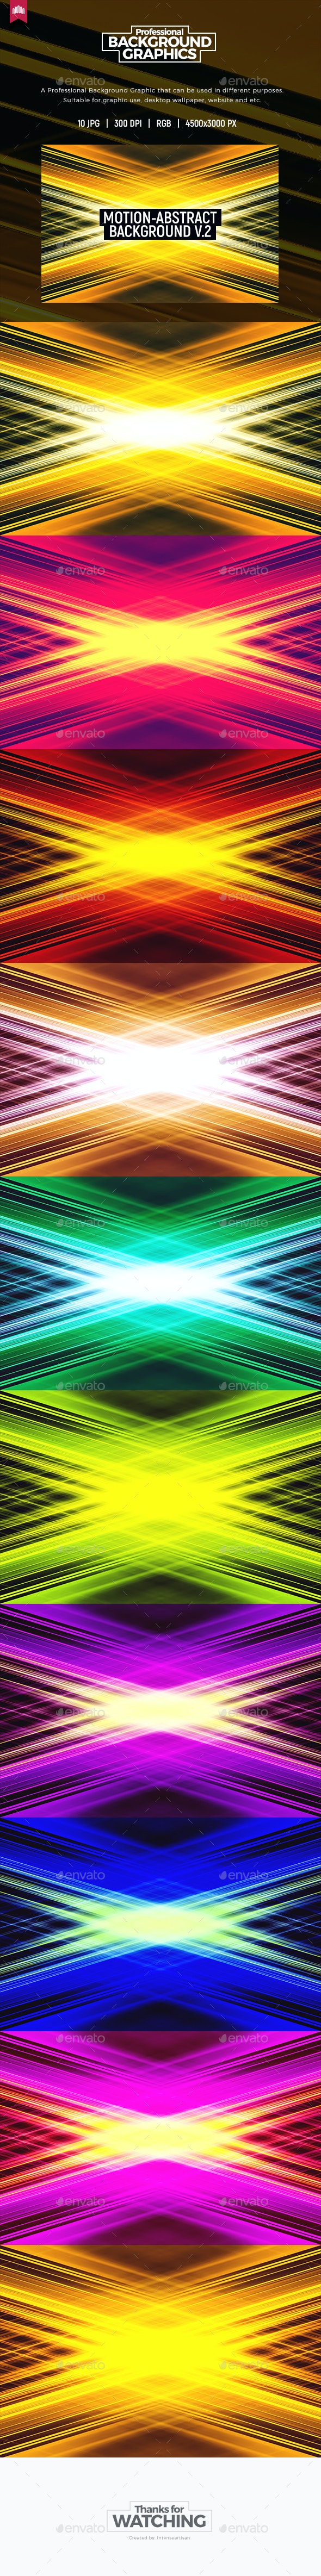 Motion Abstract - Background V.2 - Abstract Backgrounds